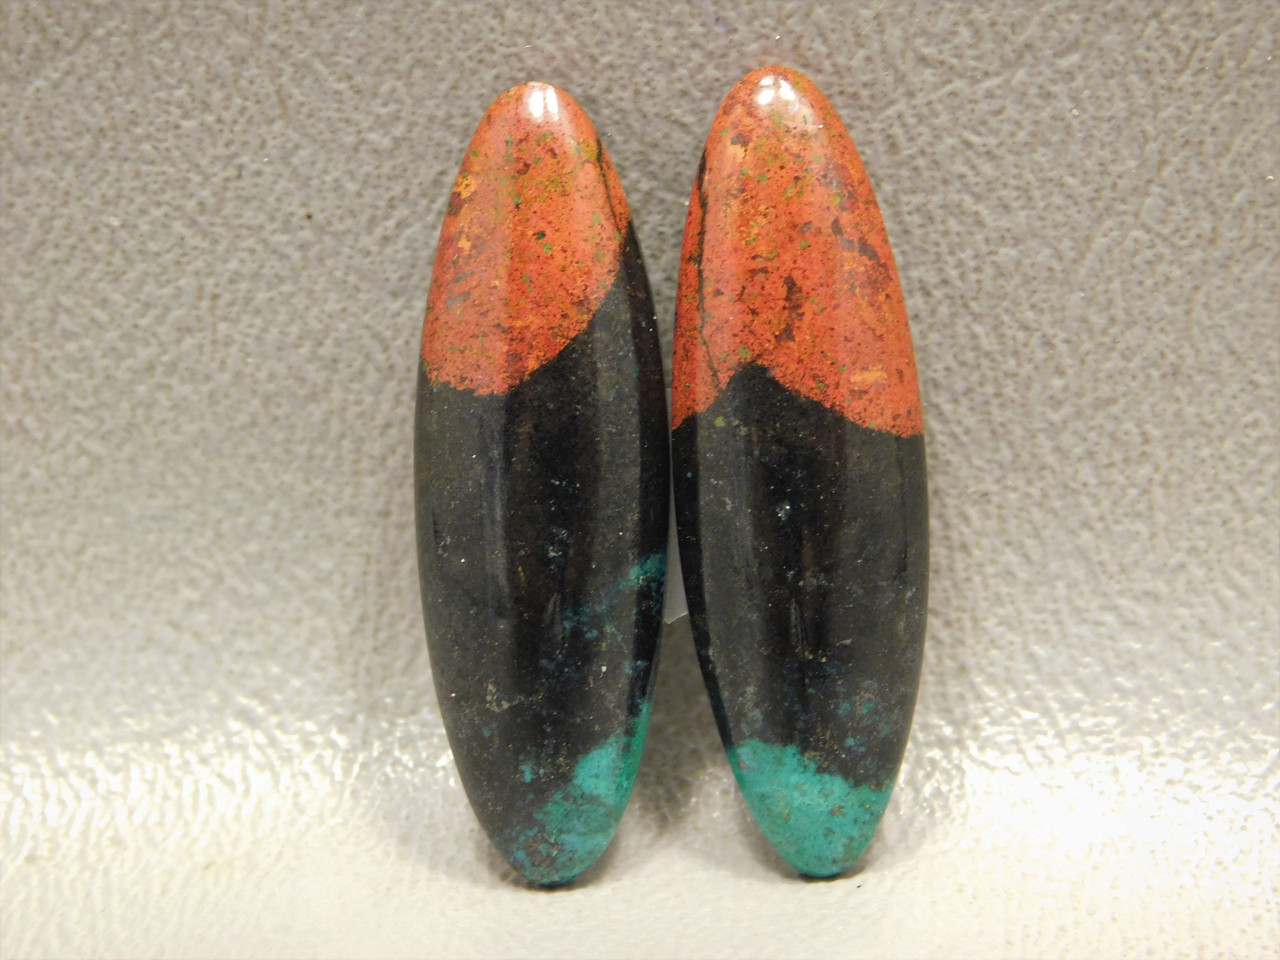 Sonora Sunset Chrysocolla Cuprite Designer Cabochons Matched Pair #11